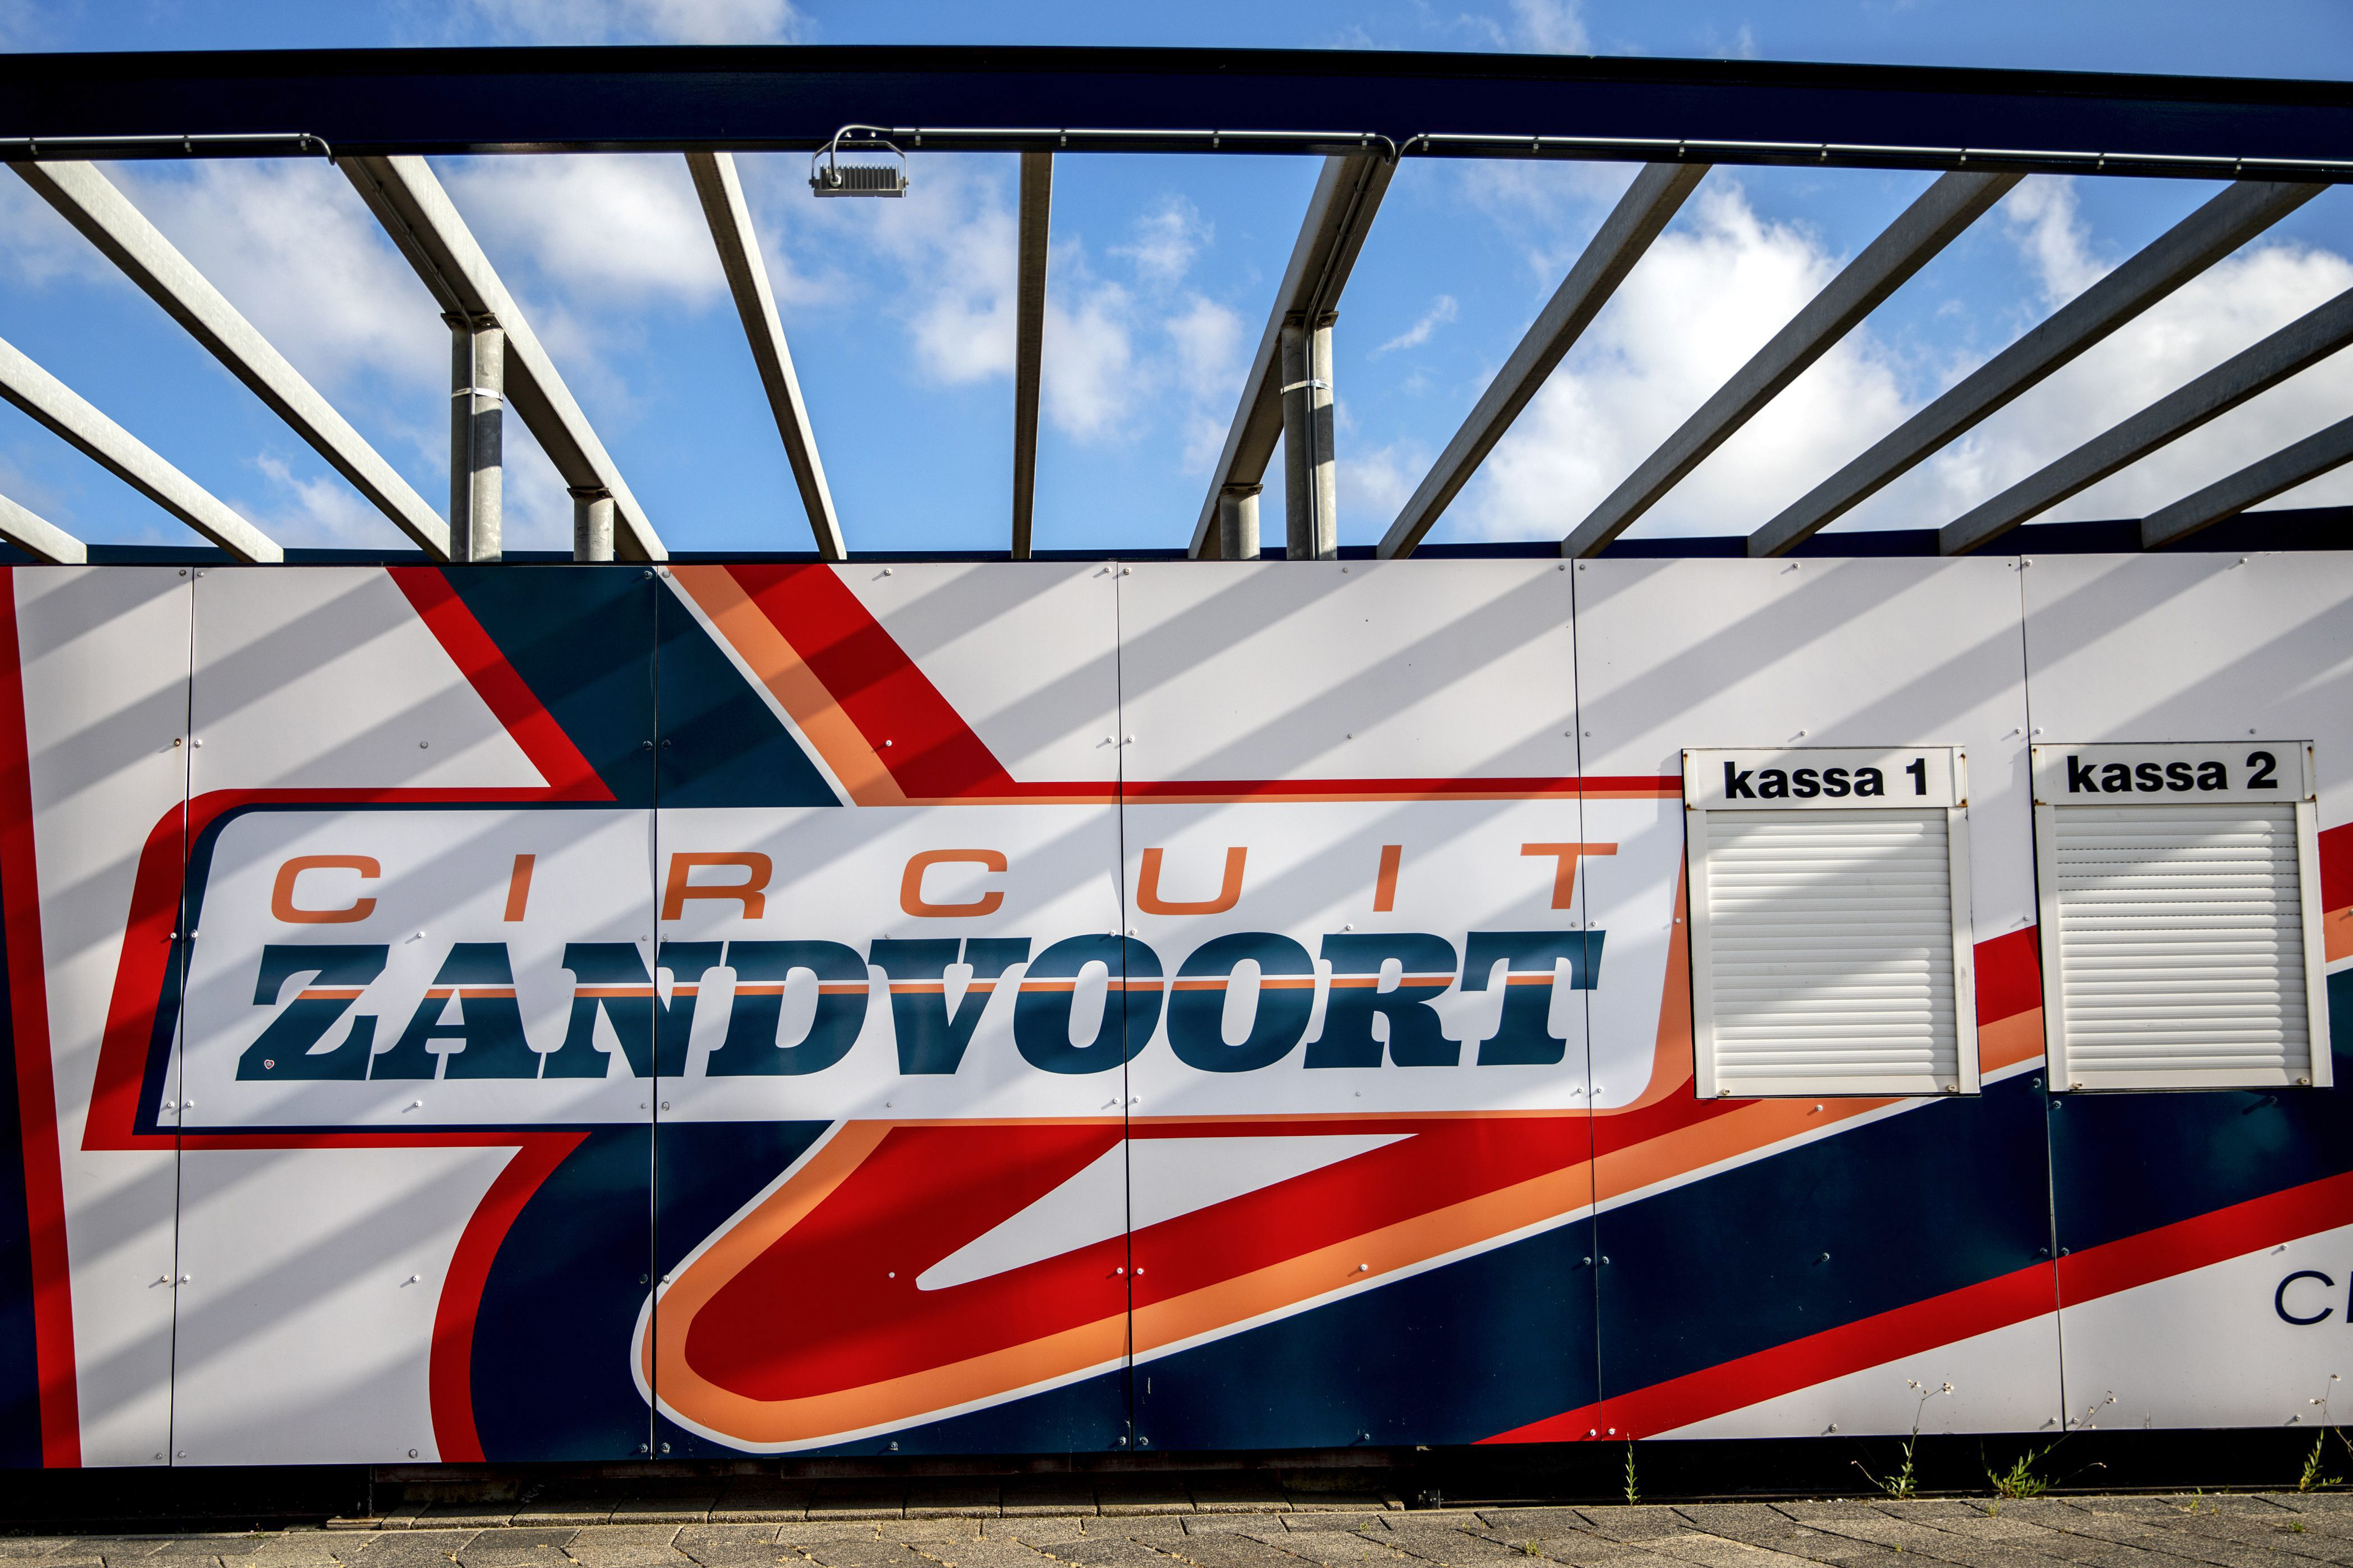 An illustration picture taken on May 14, 2019 in Zandvoort shows the logo of the Circuit Zandvoort as a press conference will take place today at the circuit to provide more information about the Formula 1 Dutch Grand Prix.